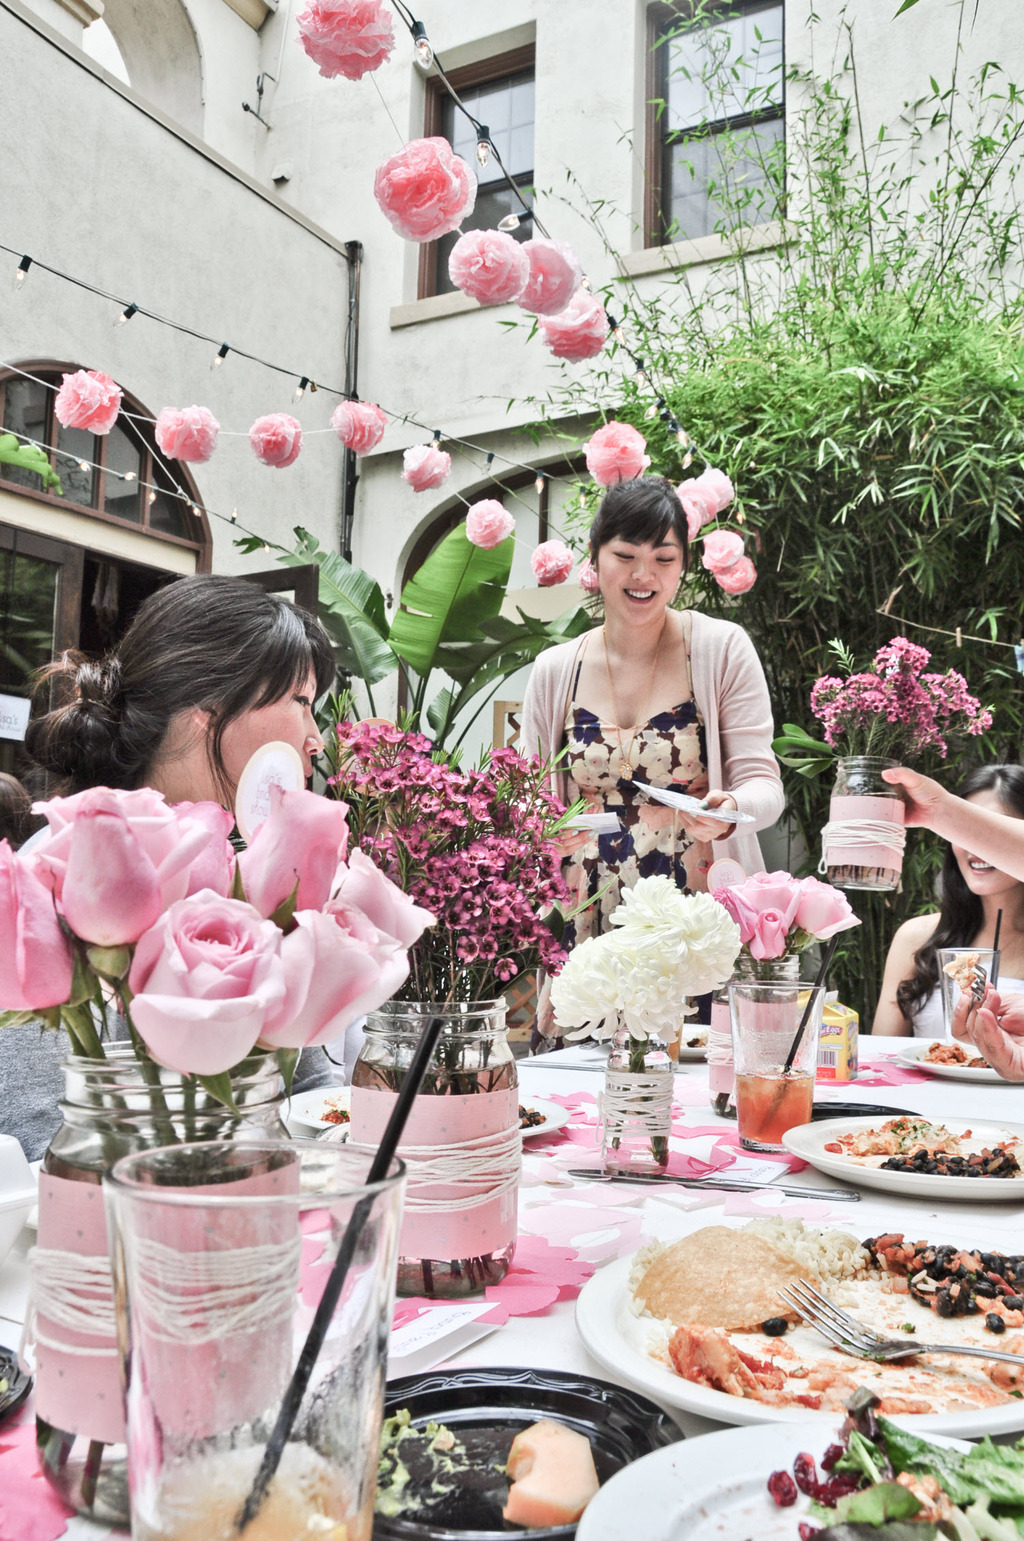 Outdoor-bridal-shower-pink-white-wedding-theme-hello-kitty-courtyard-venue.full